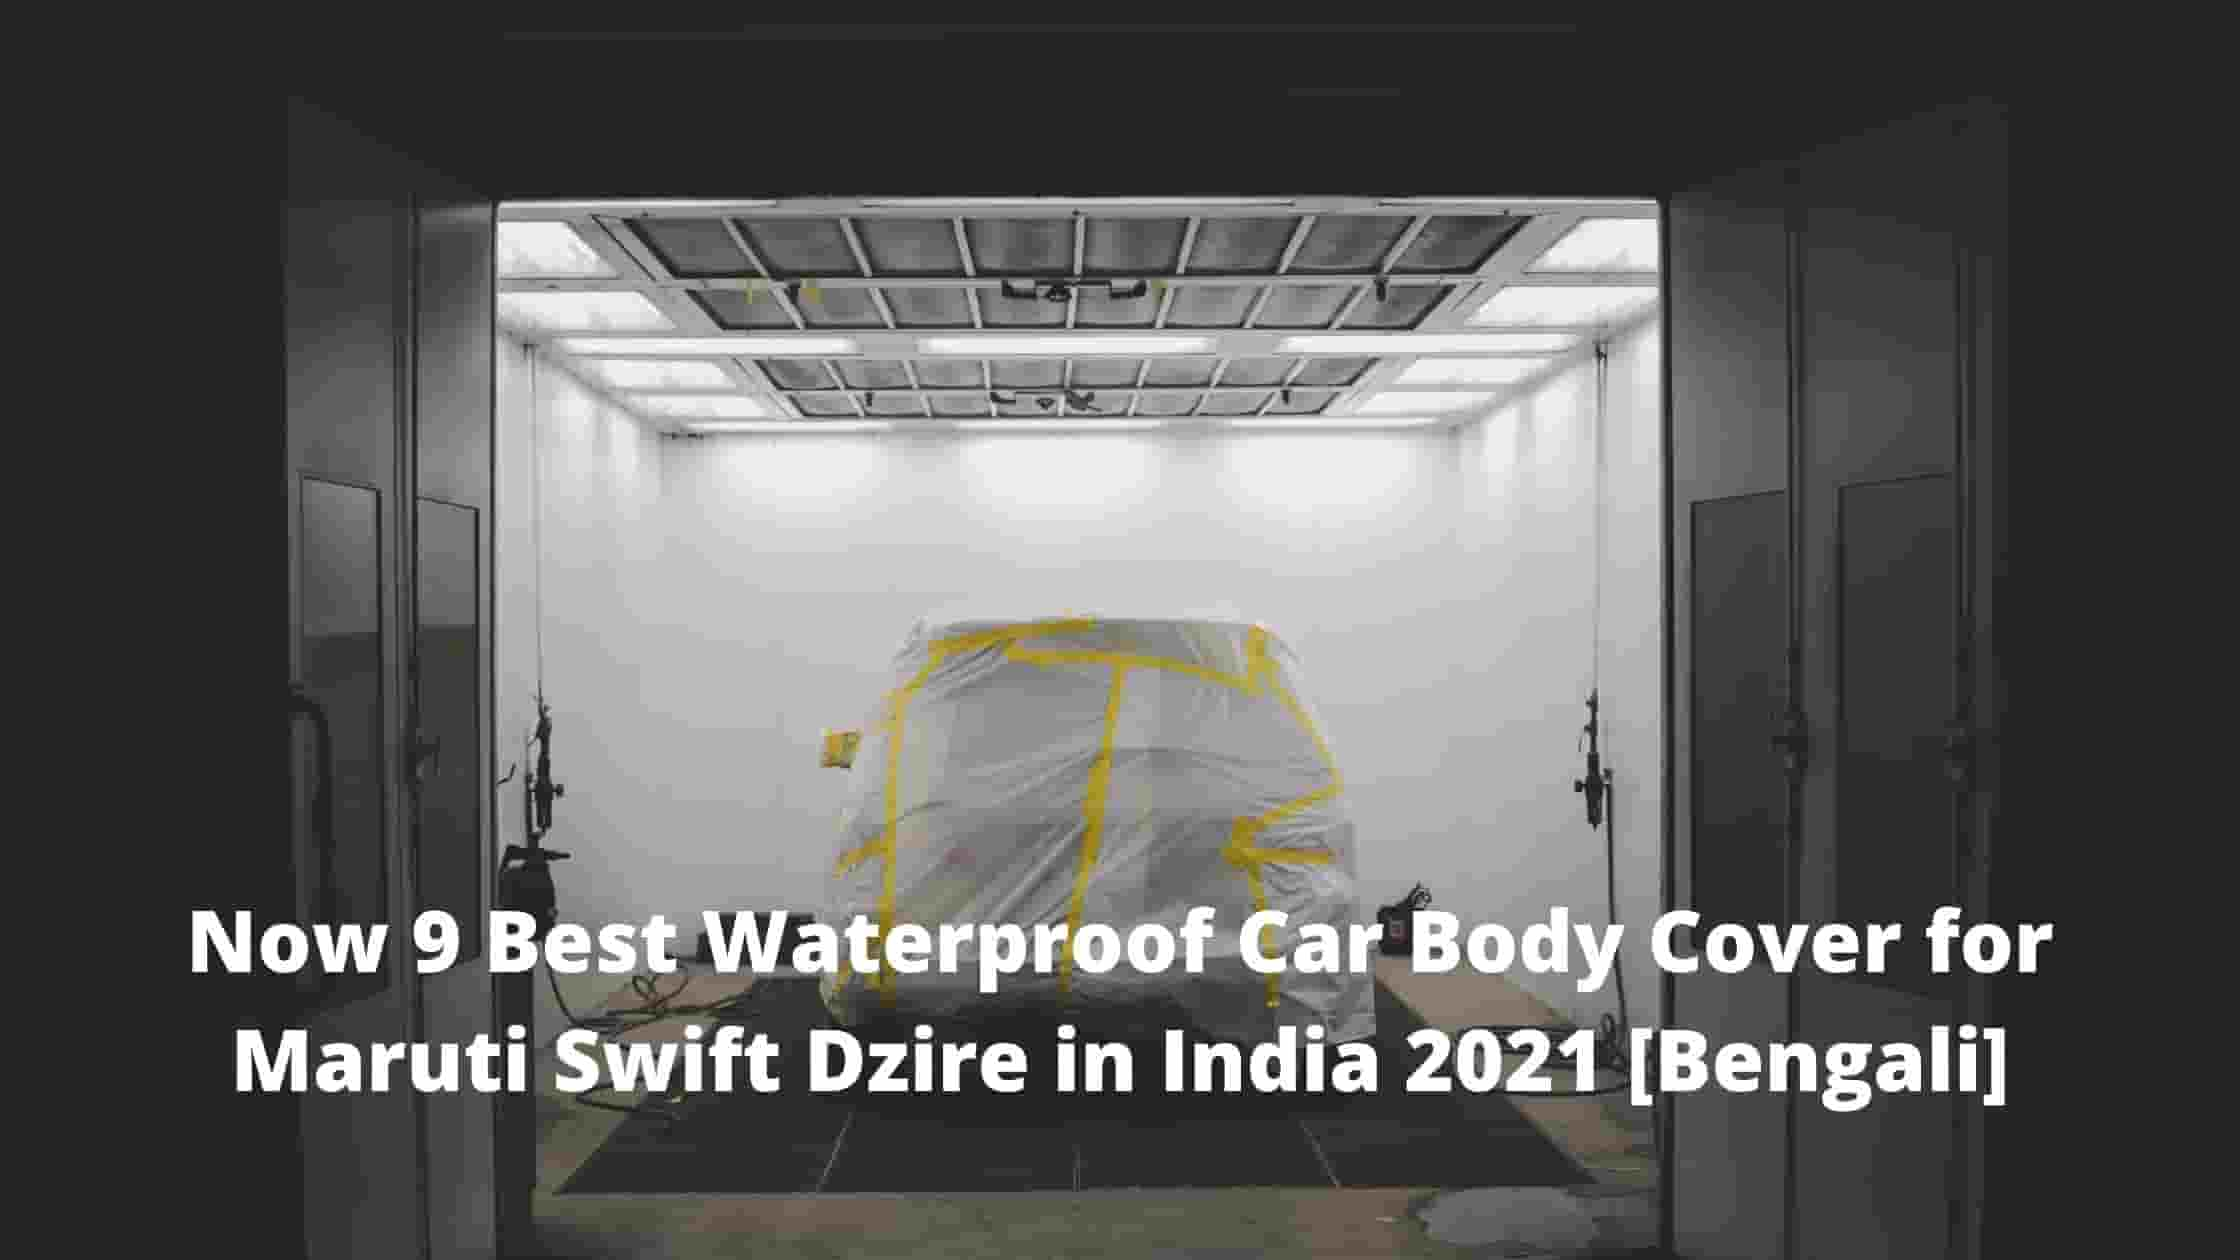 Now 9 Best Waterproof Car Body Cover for Maruti Swift Dzire in India 2021 [Bengali]